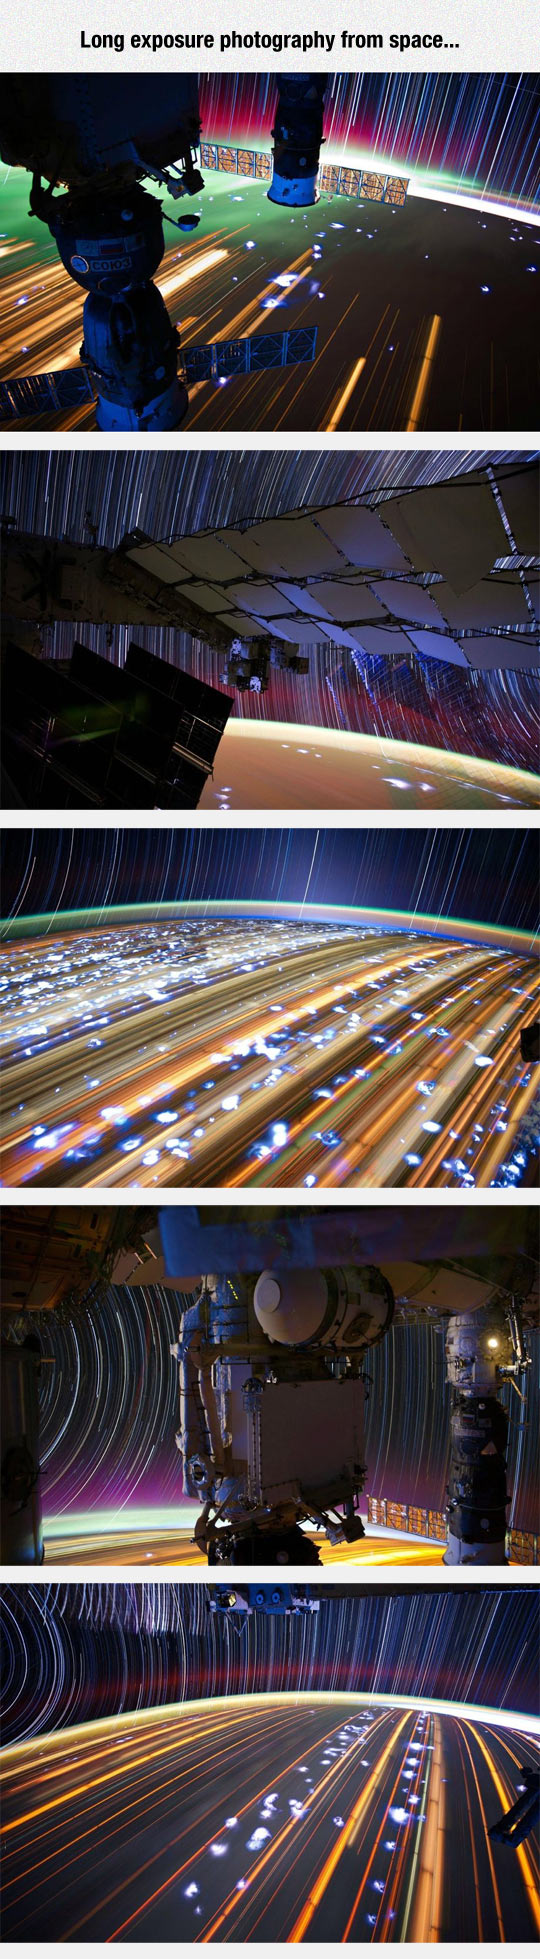 funny-long-exposure-space-photograph